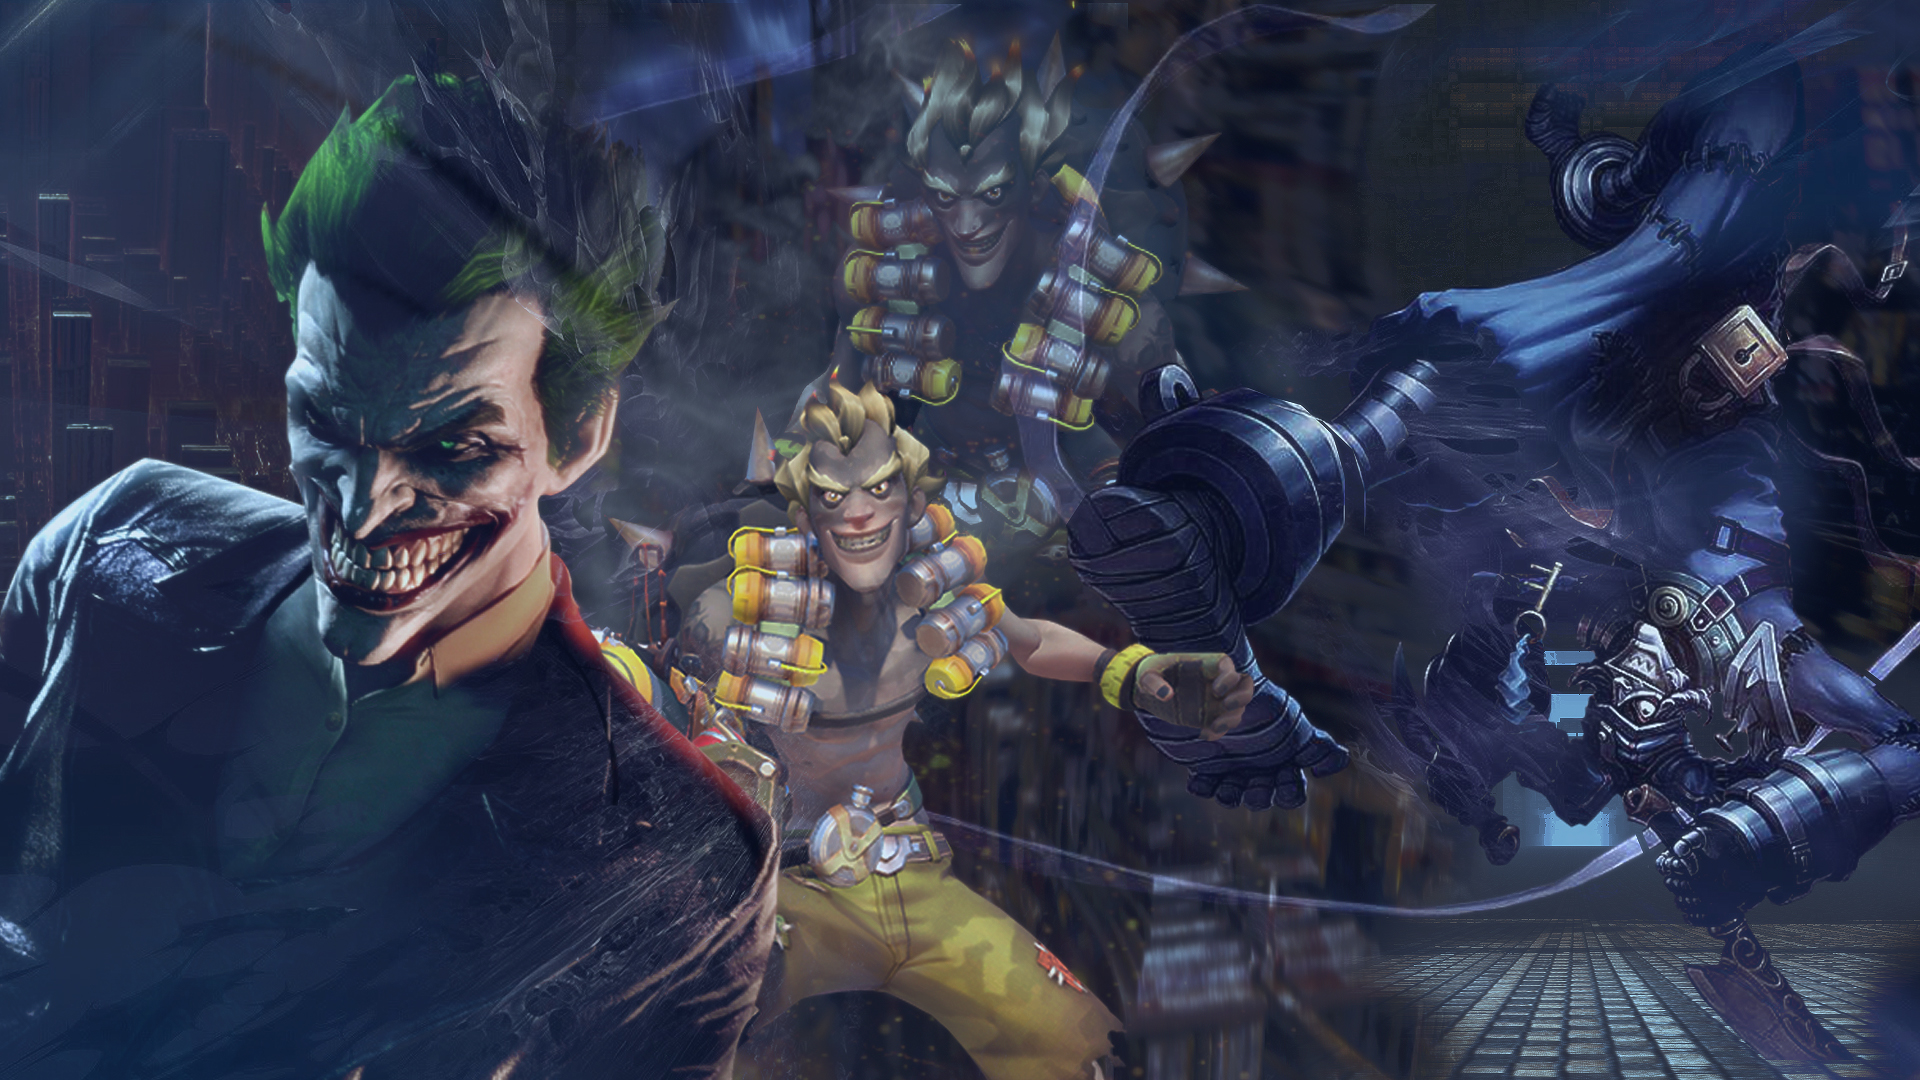 Top Wallpaper Mac Joker - joker_junkrat_shaco_wallpaper_by_t62pac-dafd6zr  Collection_75633.jpg